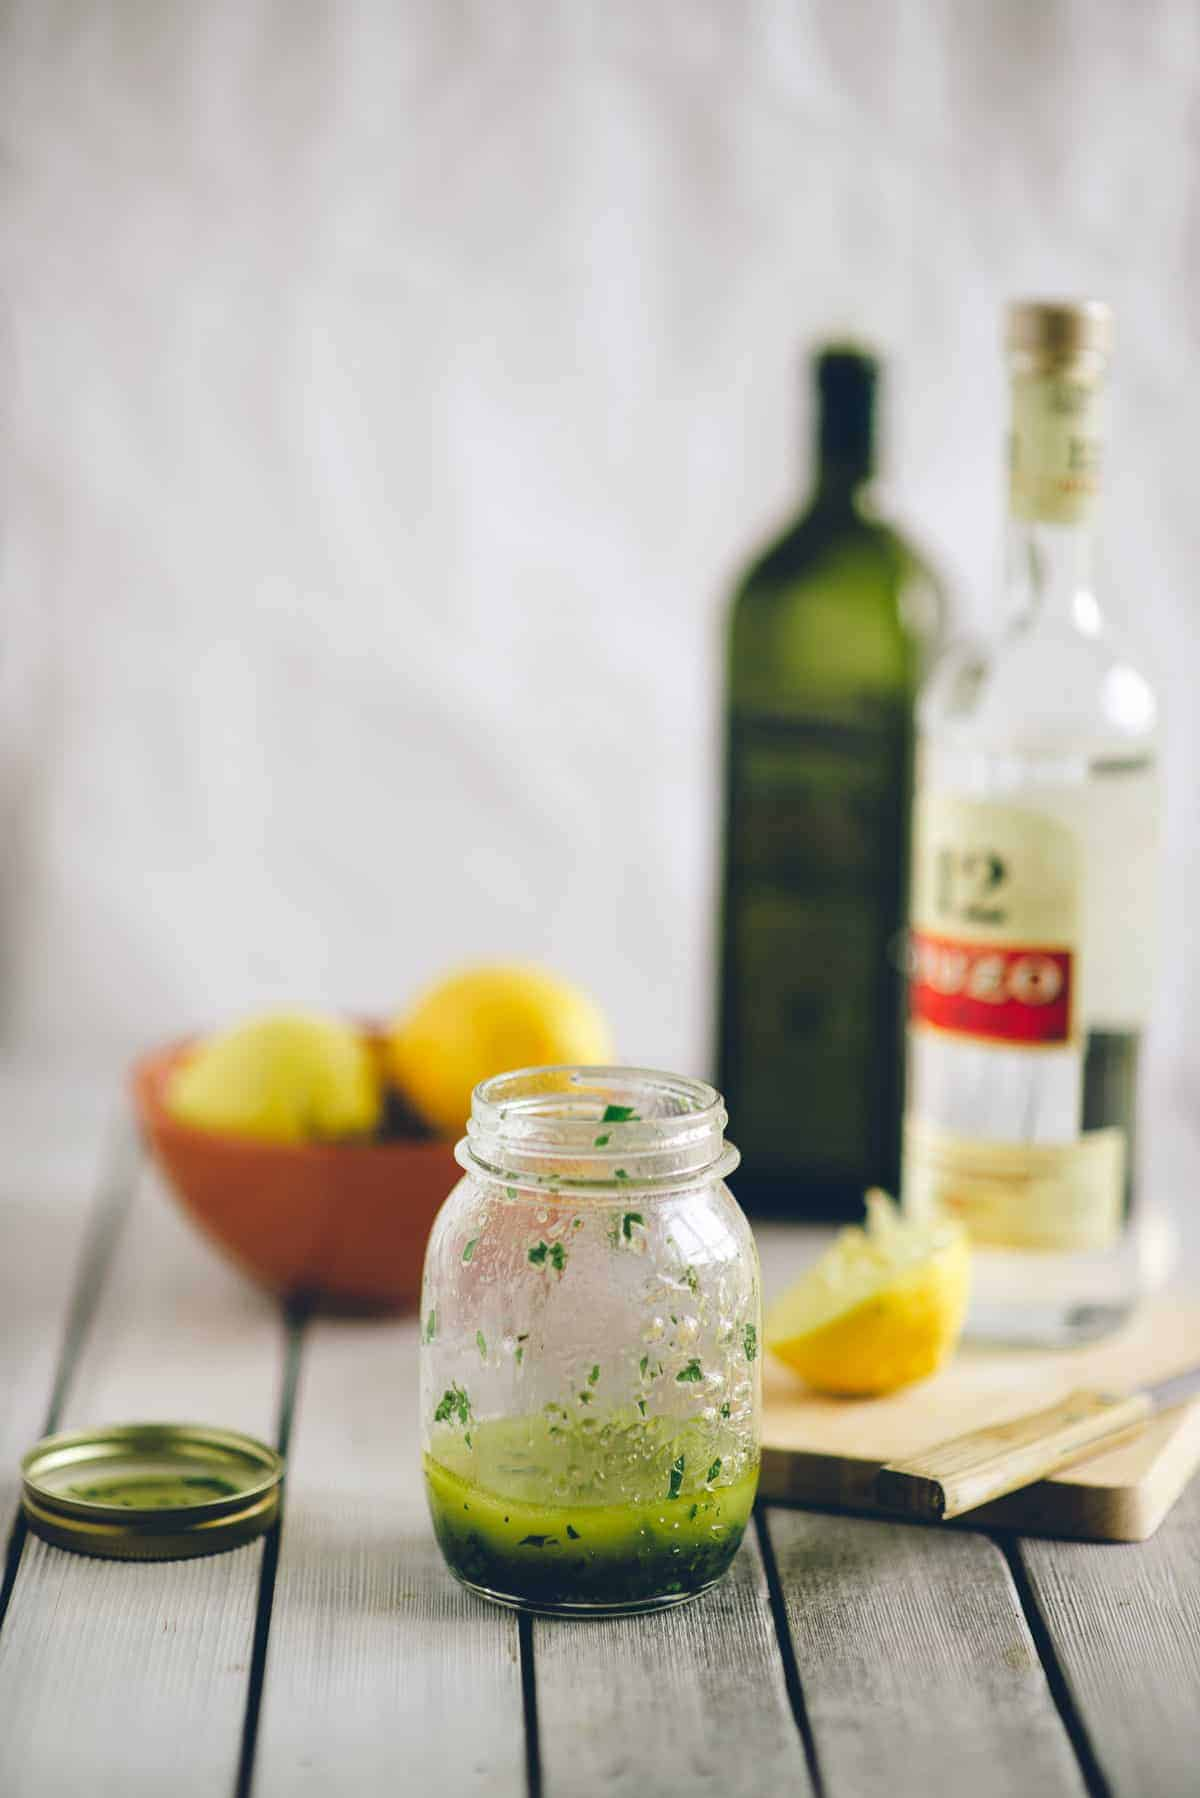 a jar of salad dressing made with ouzo on a white table